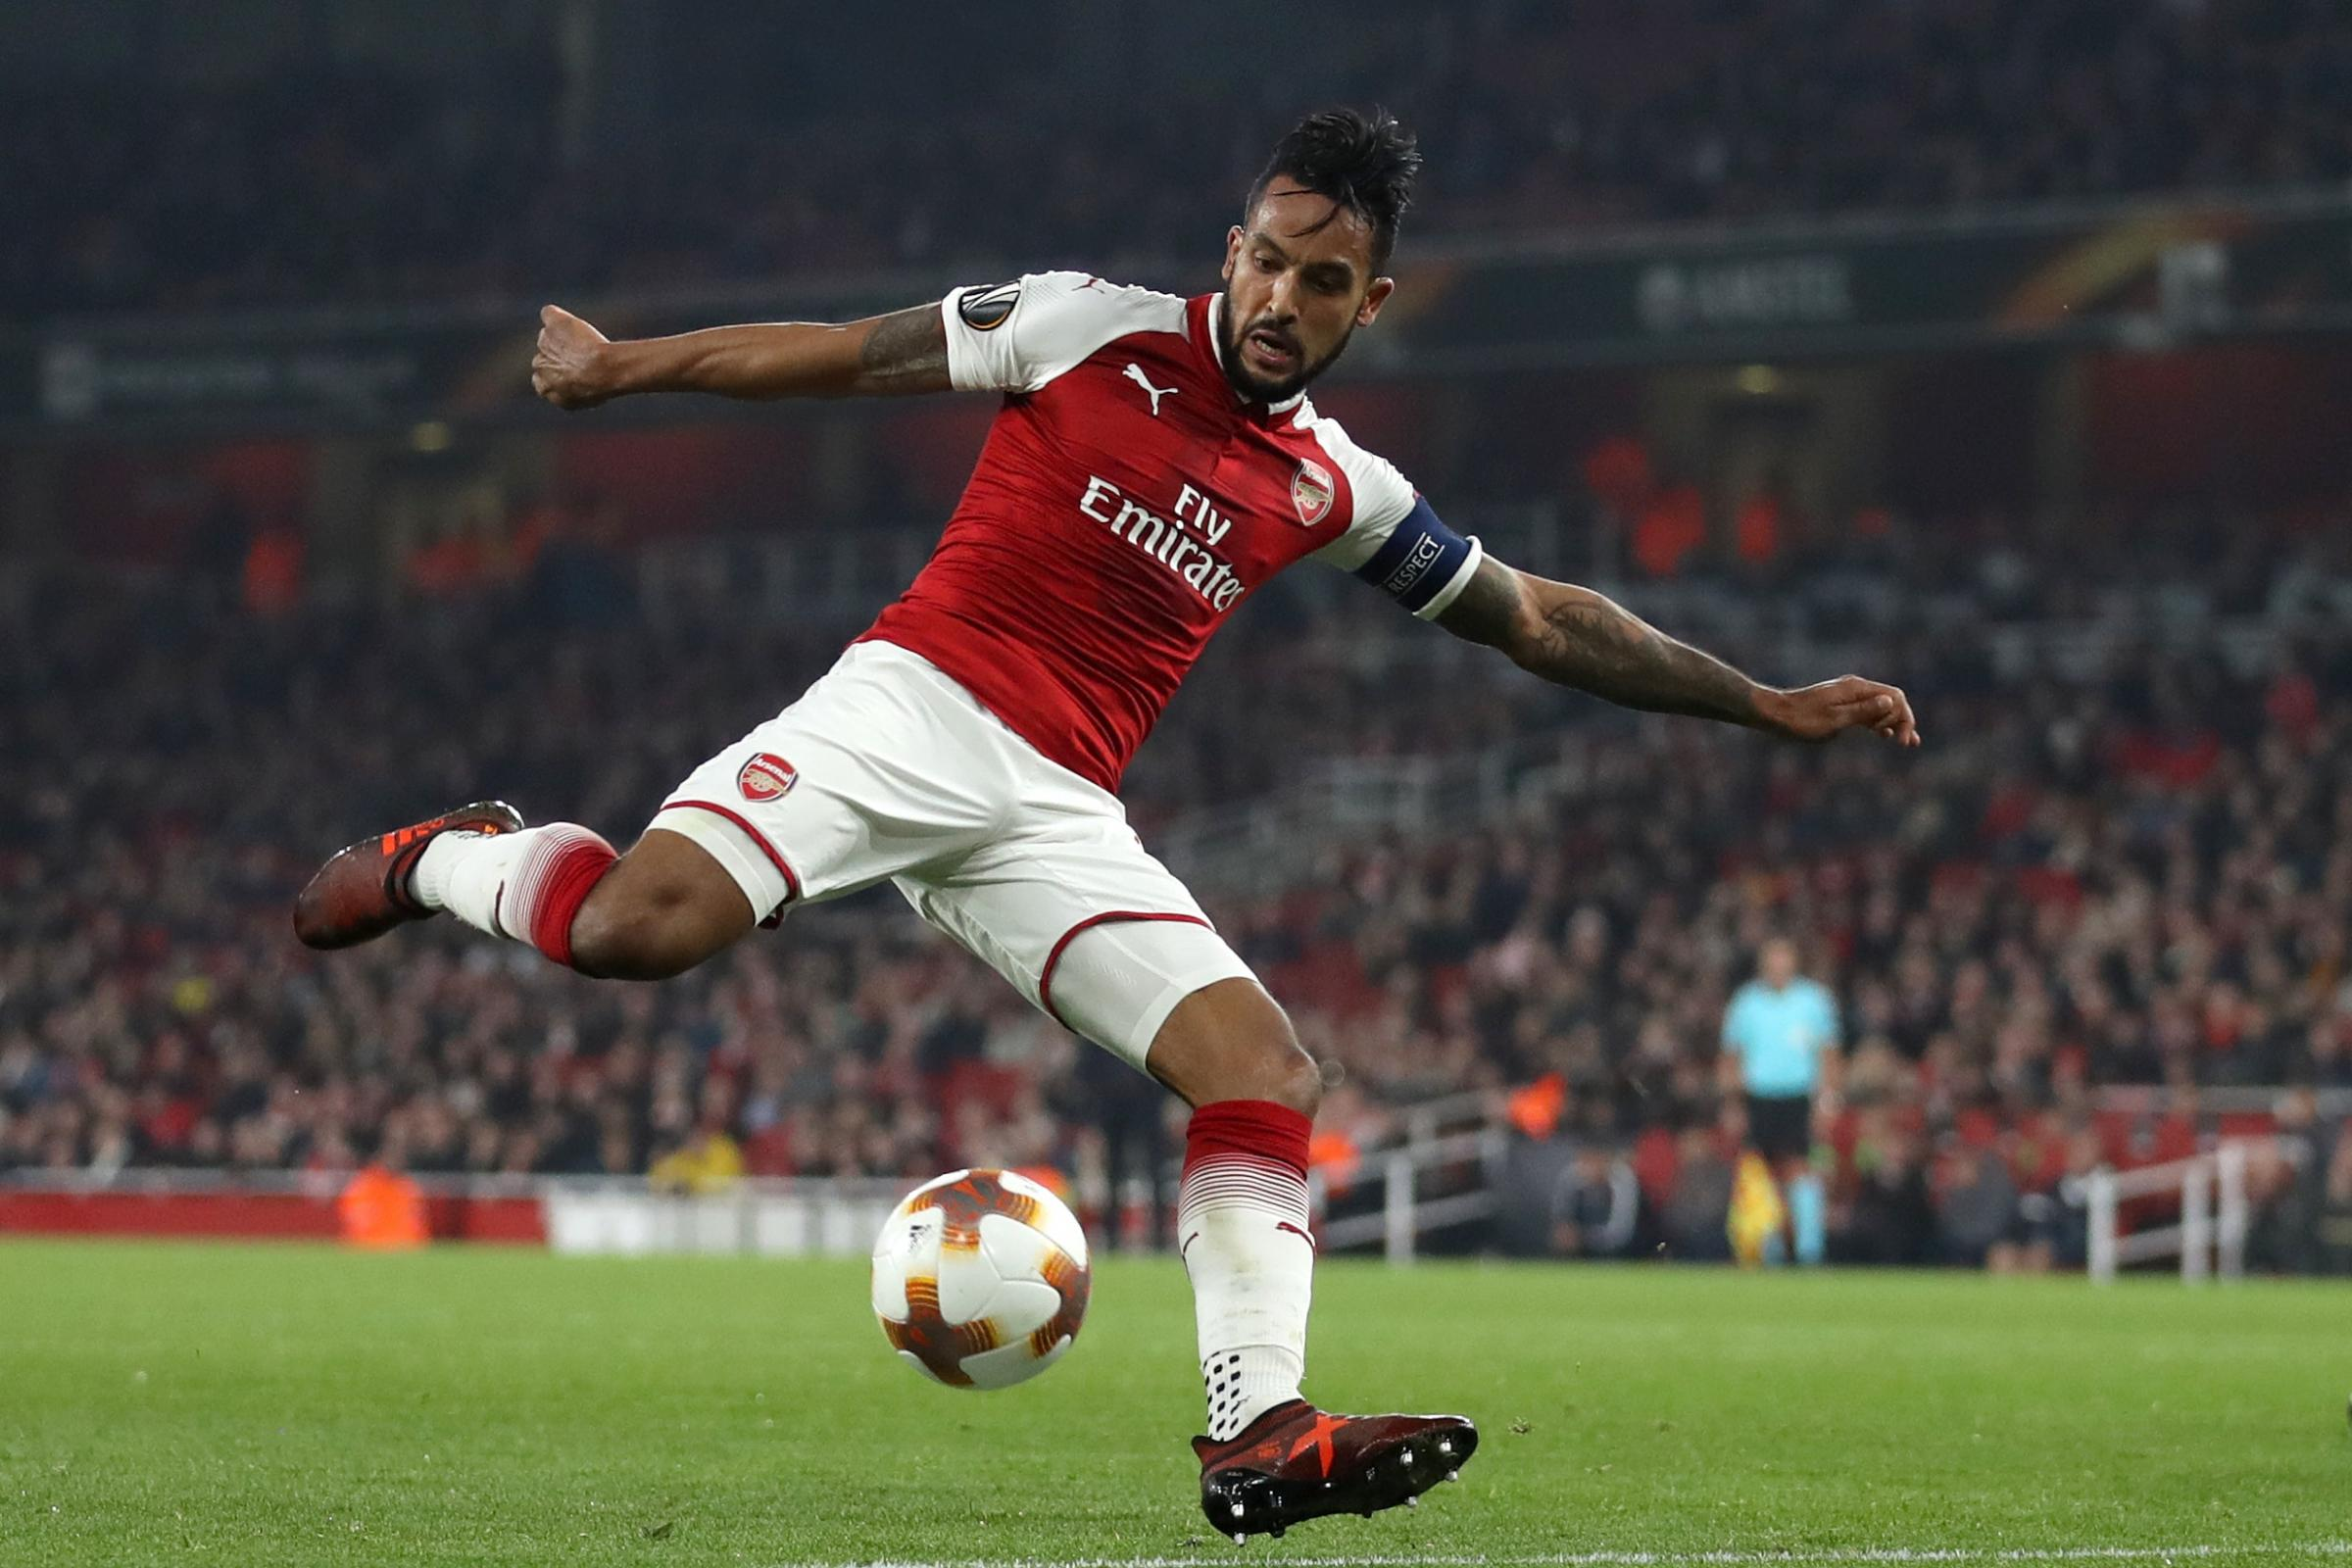 Everton are in talks with Arsenal to sign forward Theo Walcott (John Walton/PA)